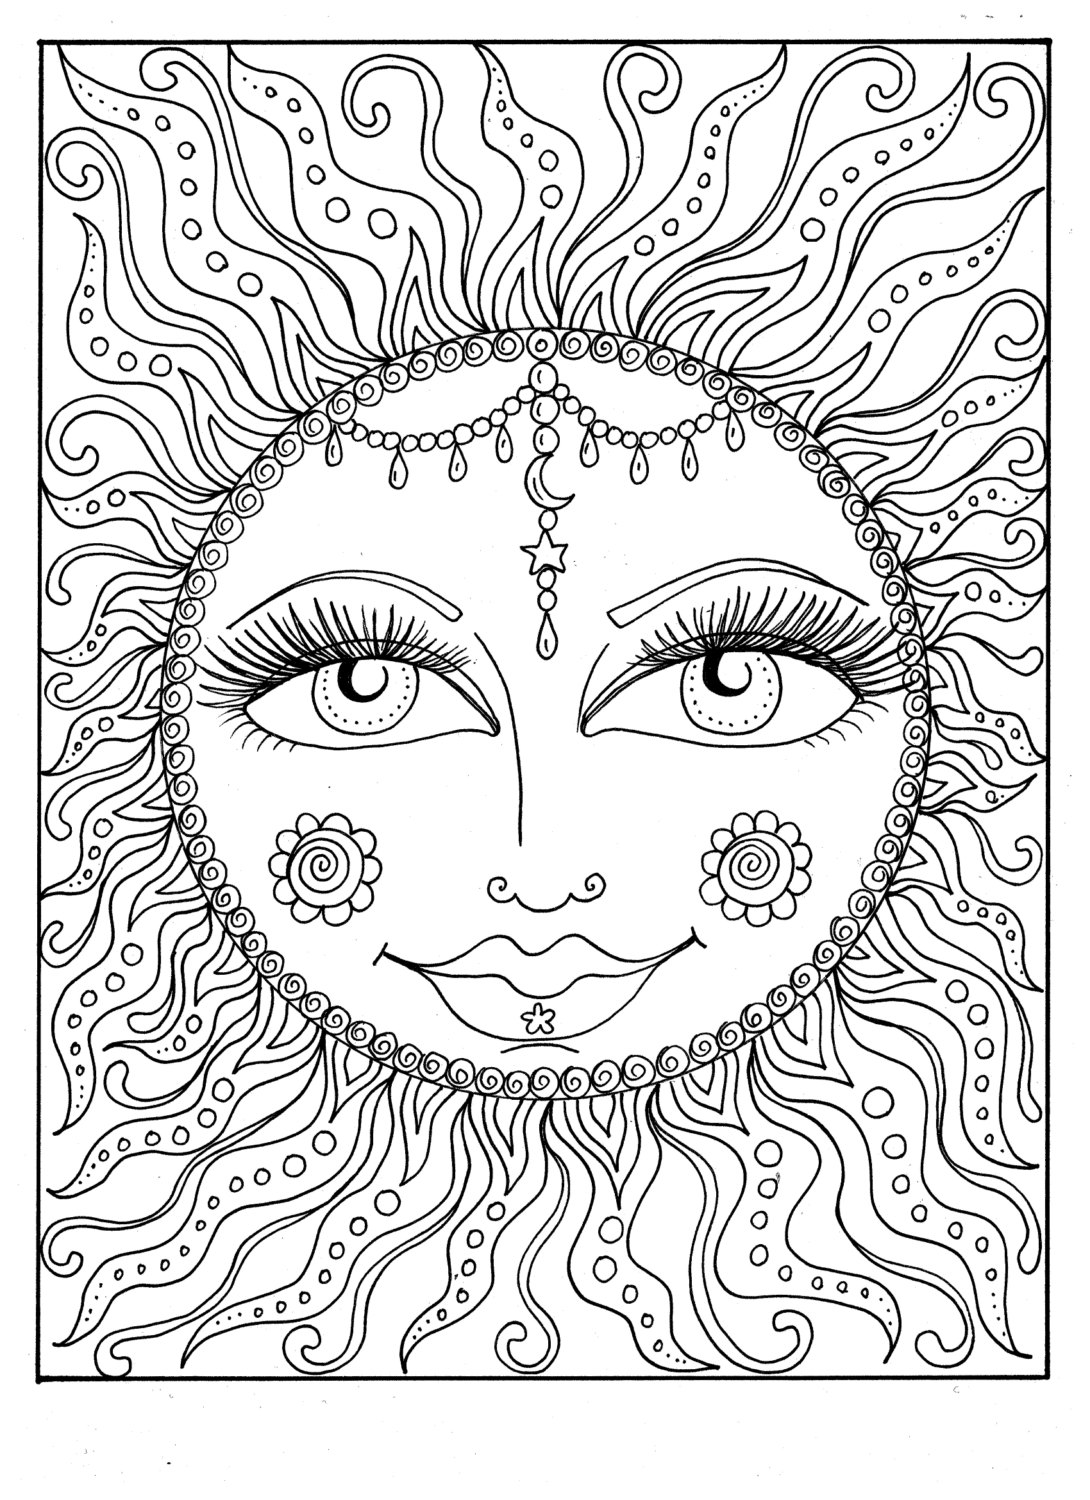 summertime coloring pages instant download sun summer coloring page adult coloring page coloring summertime pages